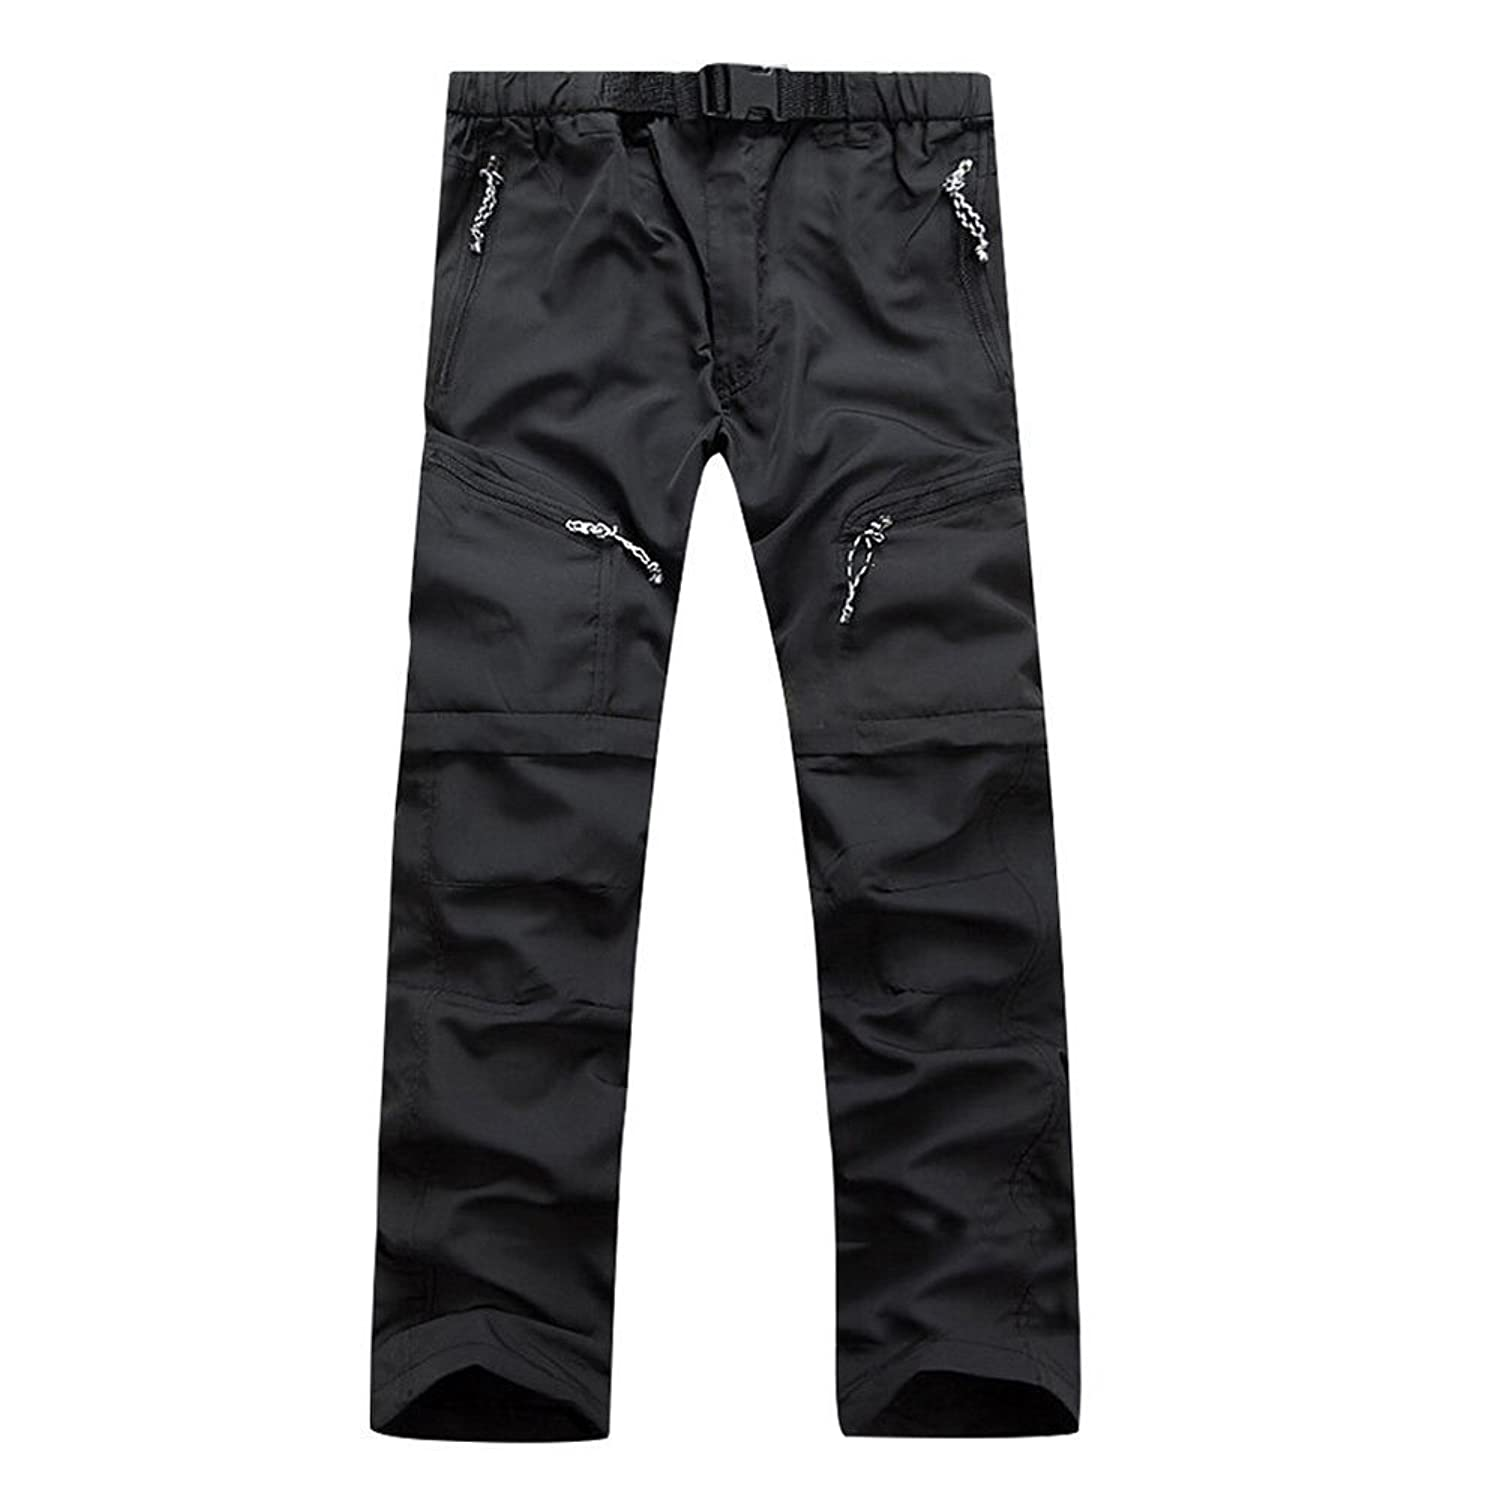 060dff2f93c7 Zip-off legs convert pant to short.2)Elastic Waist Band for more  personalized fit(no belt).3)Omni-Wick advanced evaporation technology